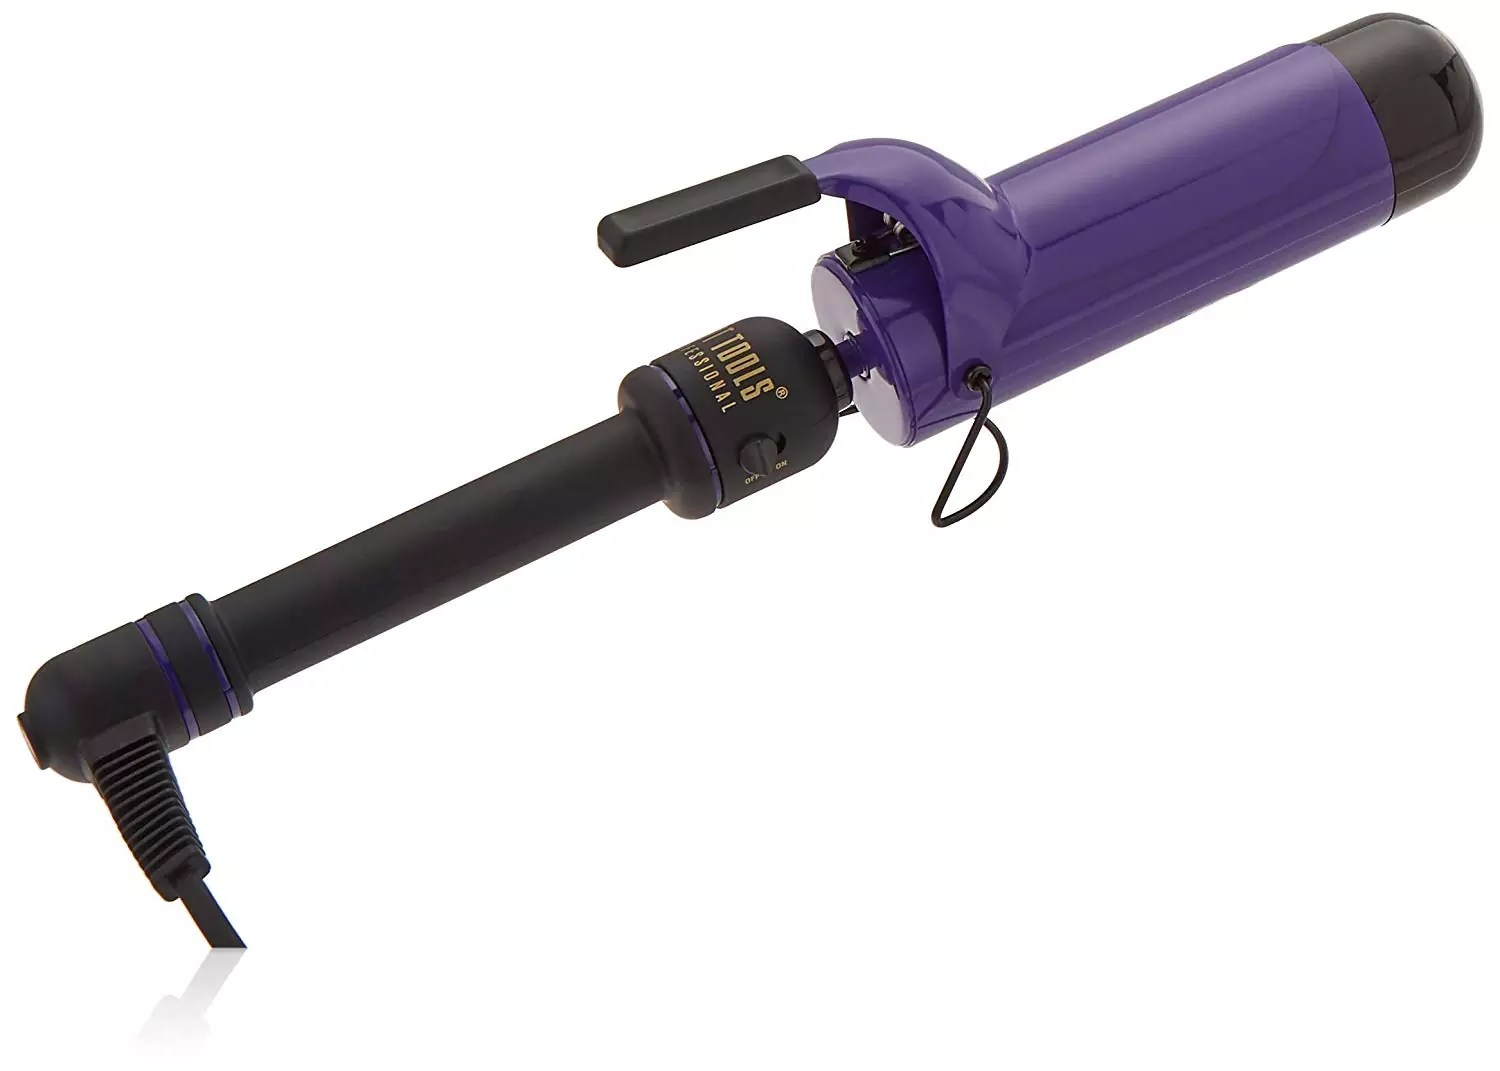 Hot Tools Professional Ceramic + Tourmaline Curling Iron